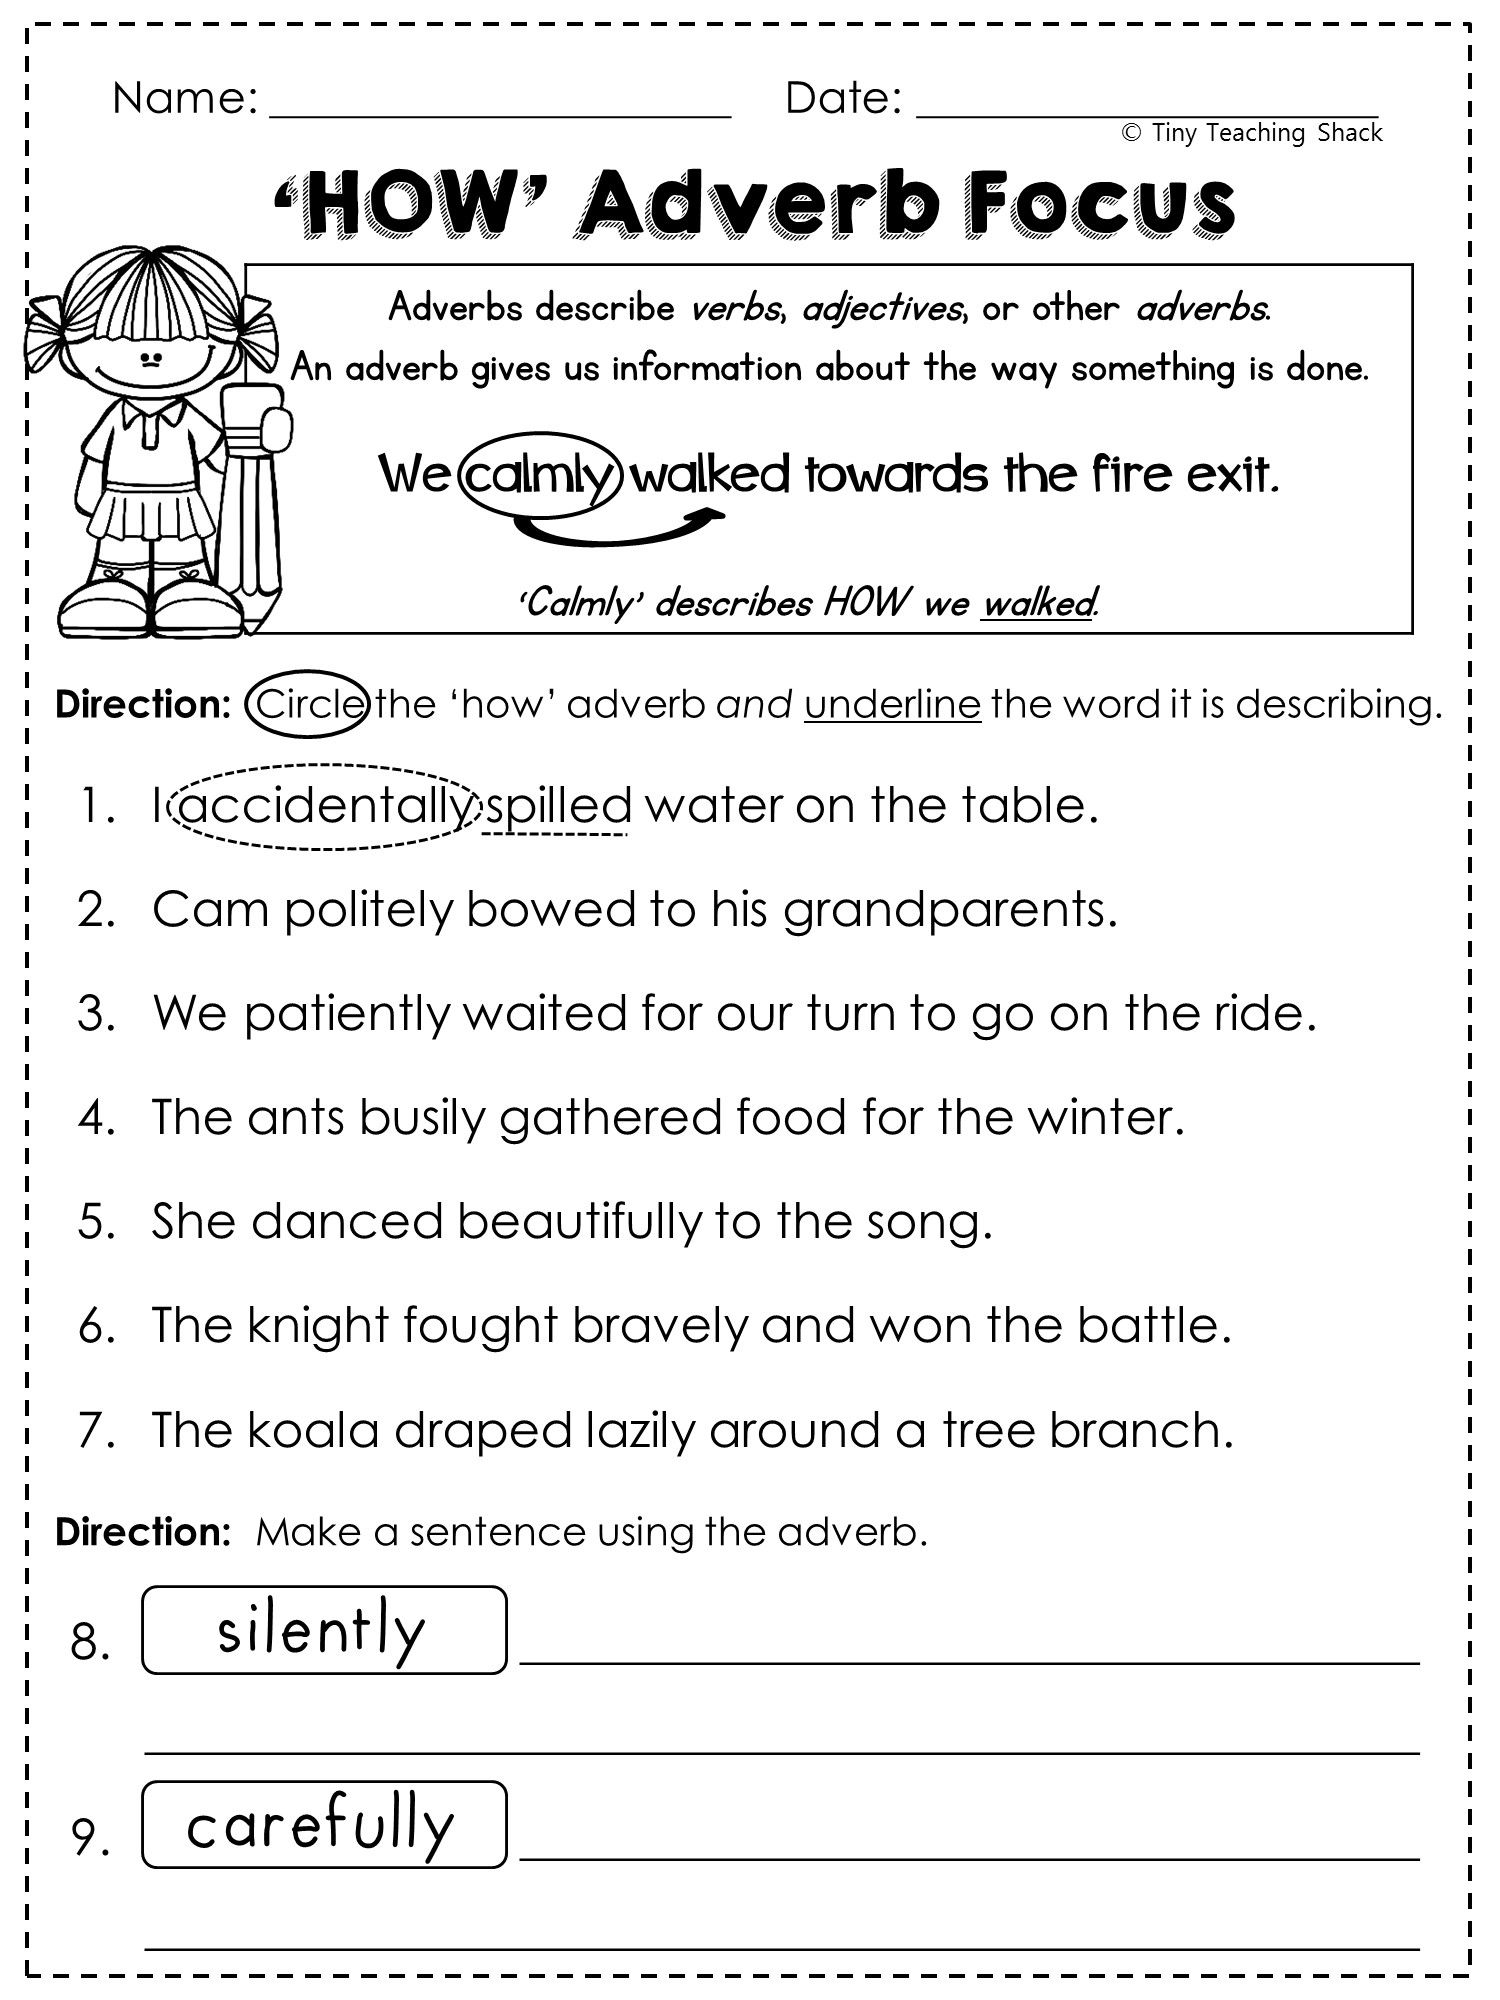 FREE adverb worksheet Fun with Literacy My TPT – Adverbs Worksheet